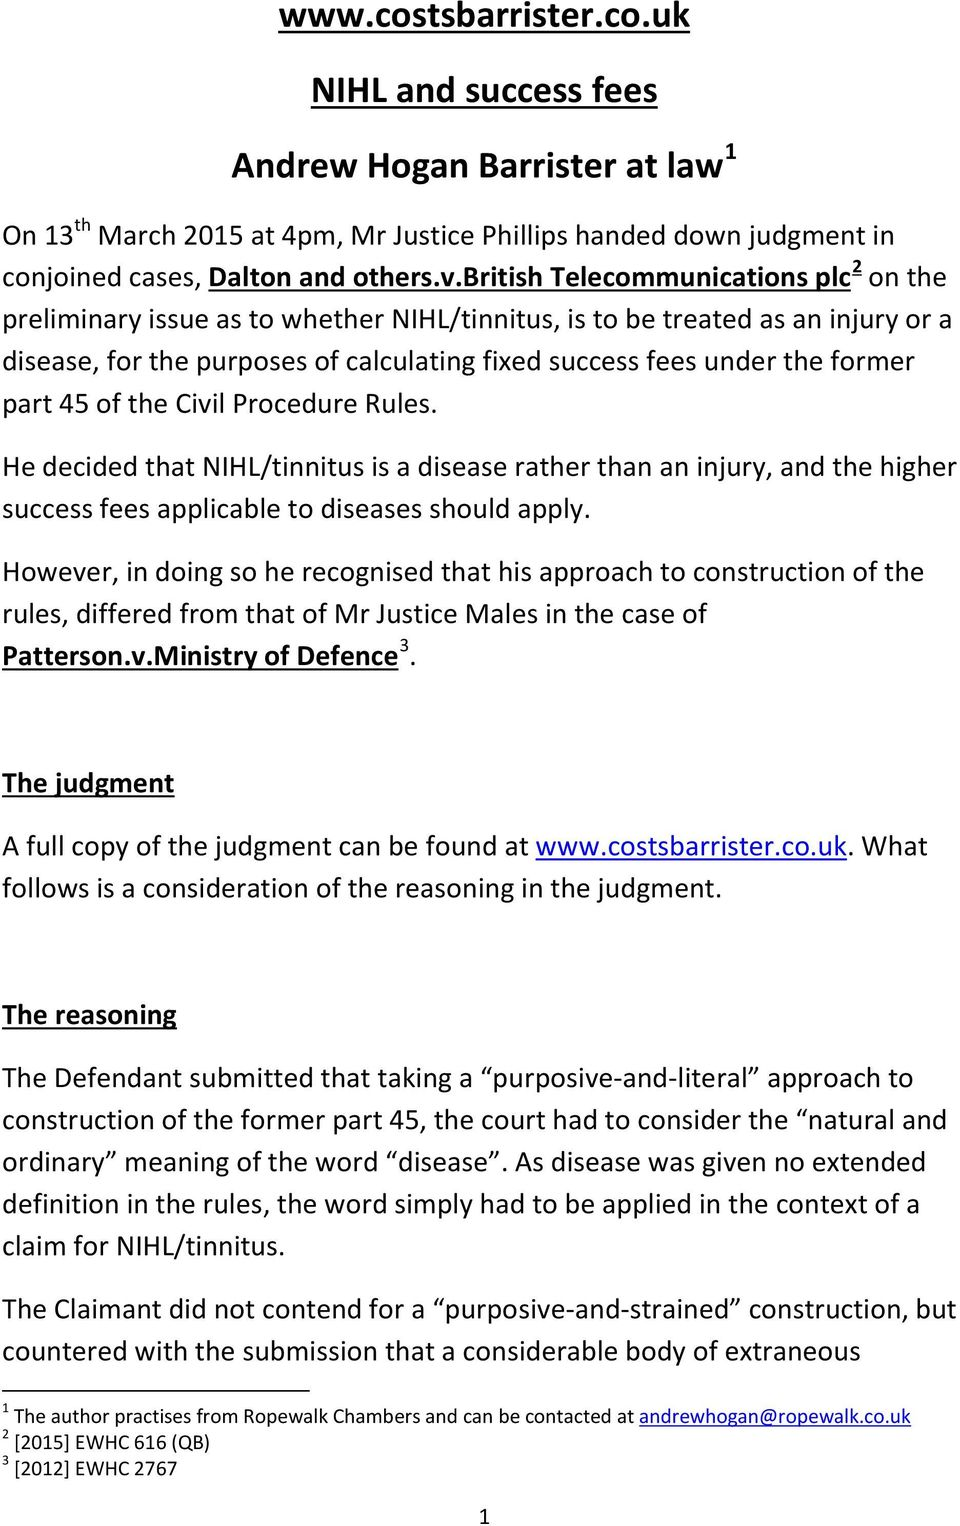 part 45 of the Civil Procedure Rules. He decided that NIHL/tinnitus is a disease rather than an injury, and the higher success fees applicable to diseases should apply.